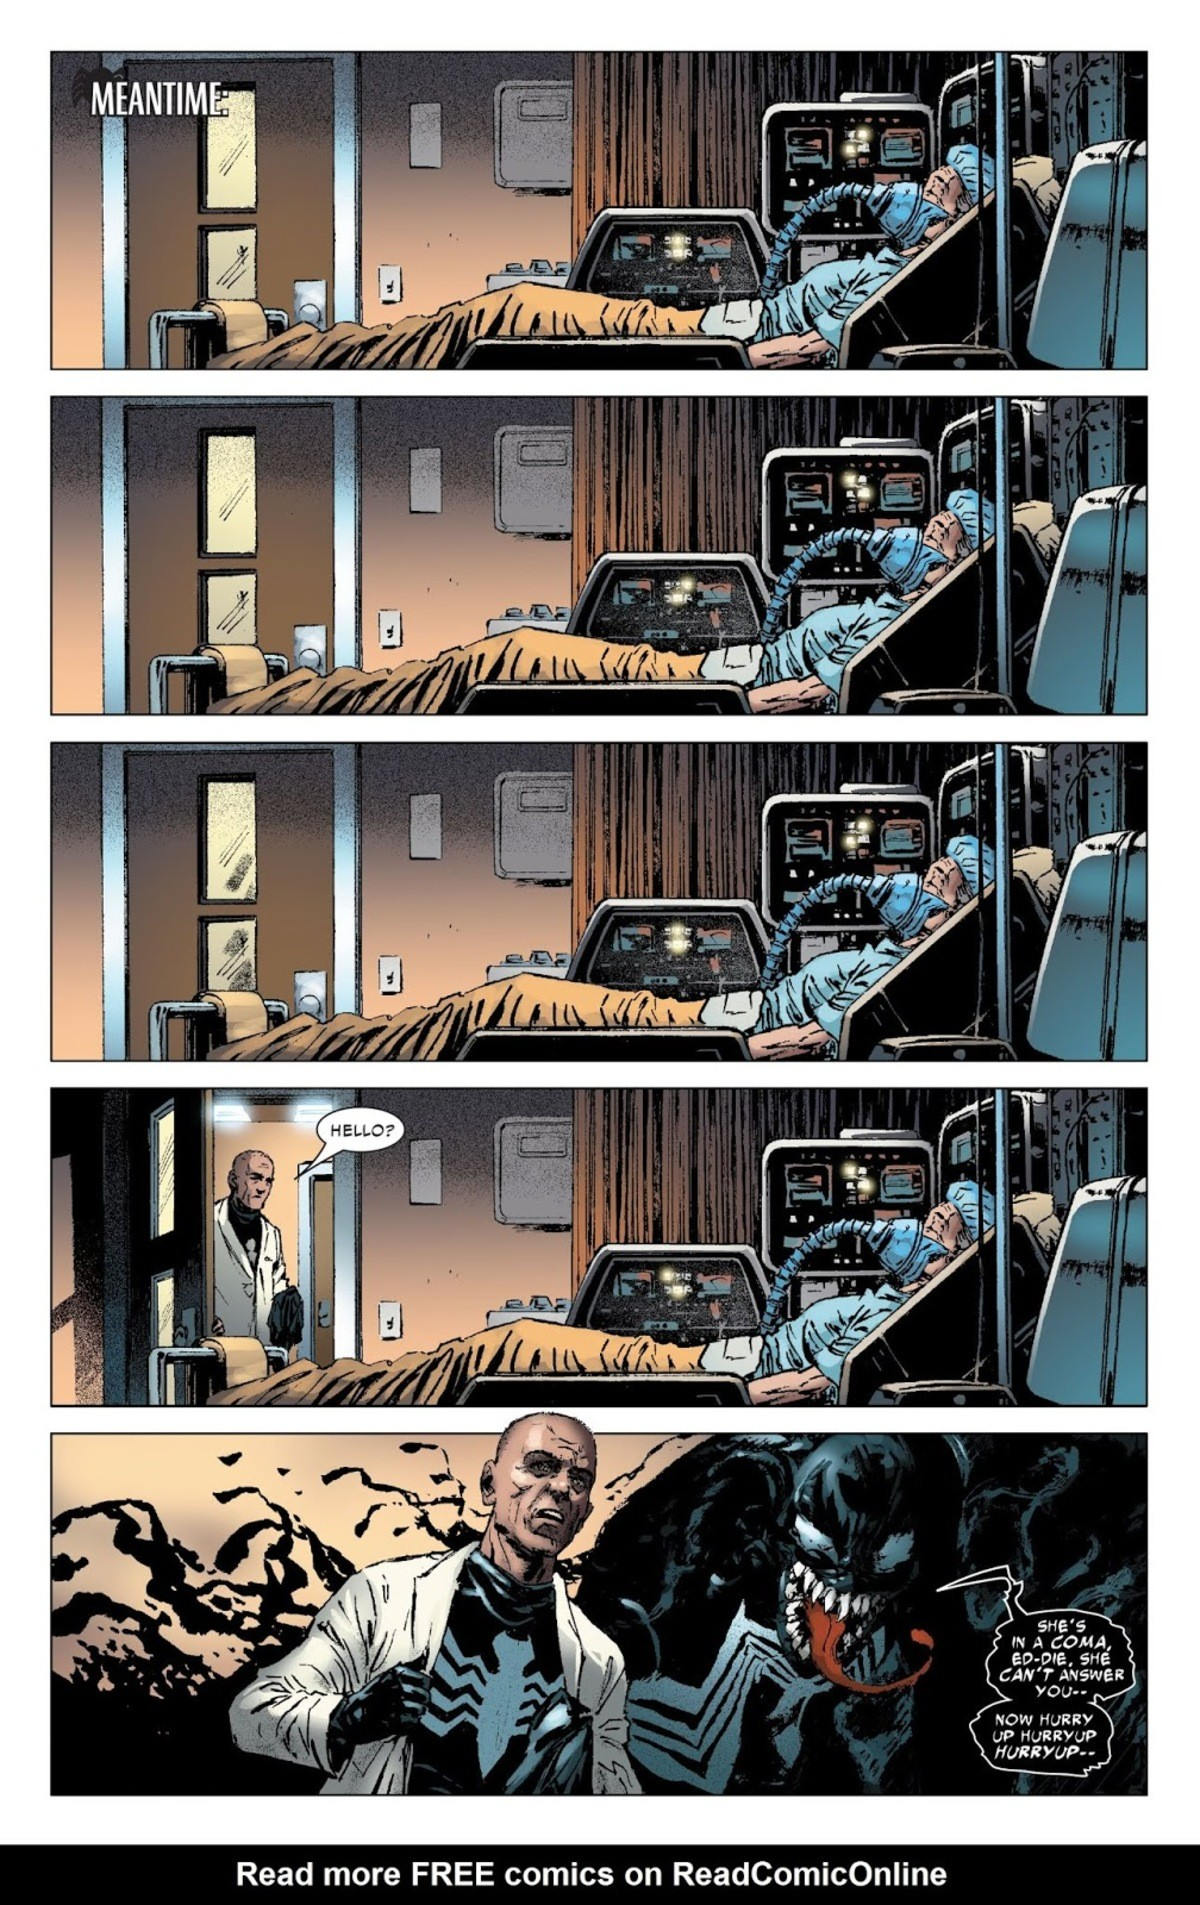 Pick your poison: Eddie Brock or Venom. Do you feel in charge? Eddie brutally murdered a nice nurse with a scalpel. Her coworkers thought they heard someone scr